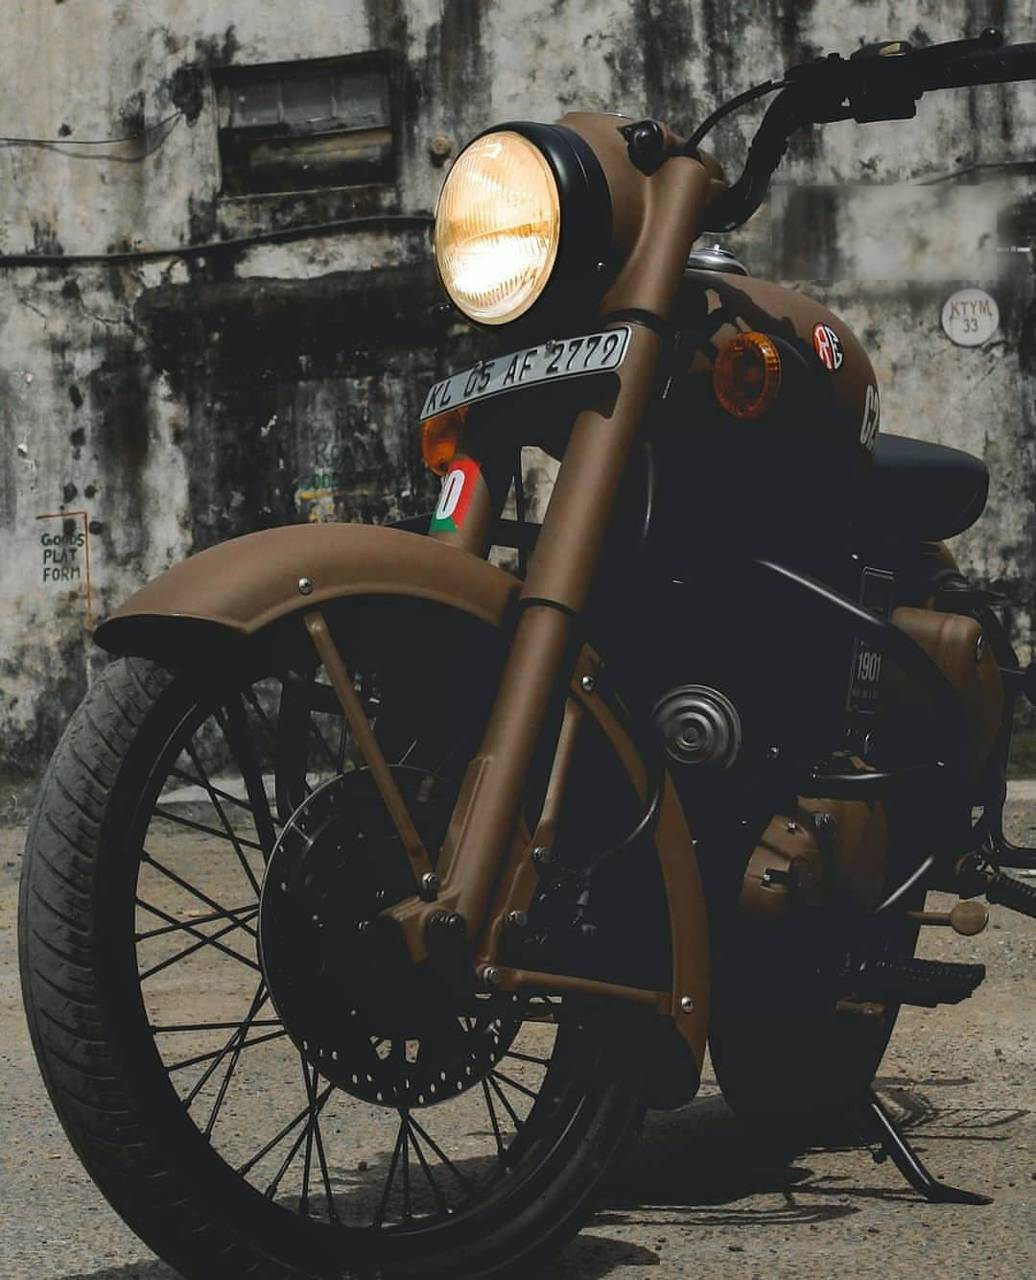 The Best Iphone Royal Enfield Wallpapers Hd